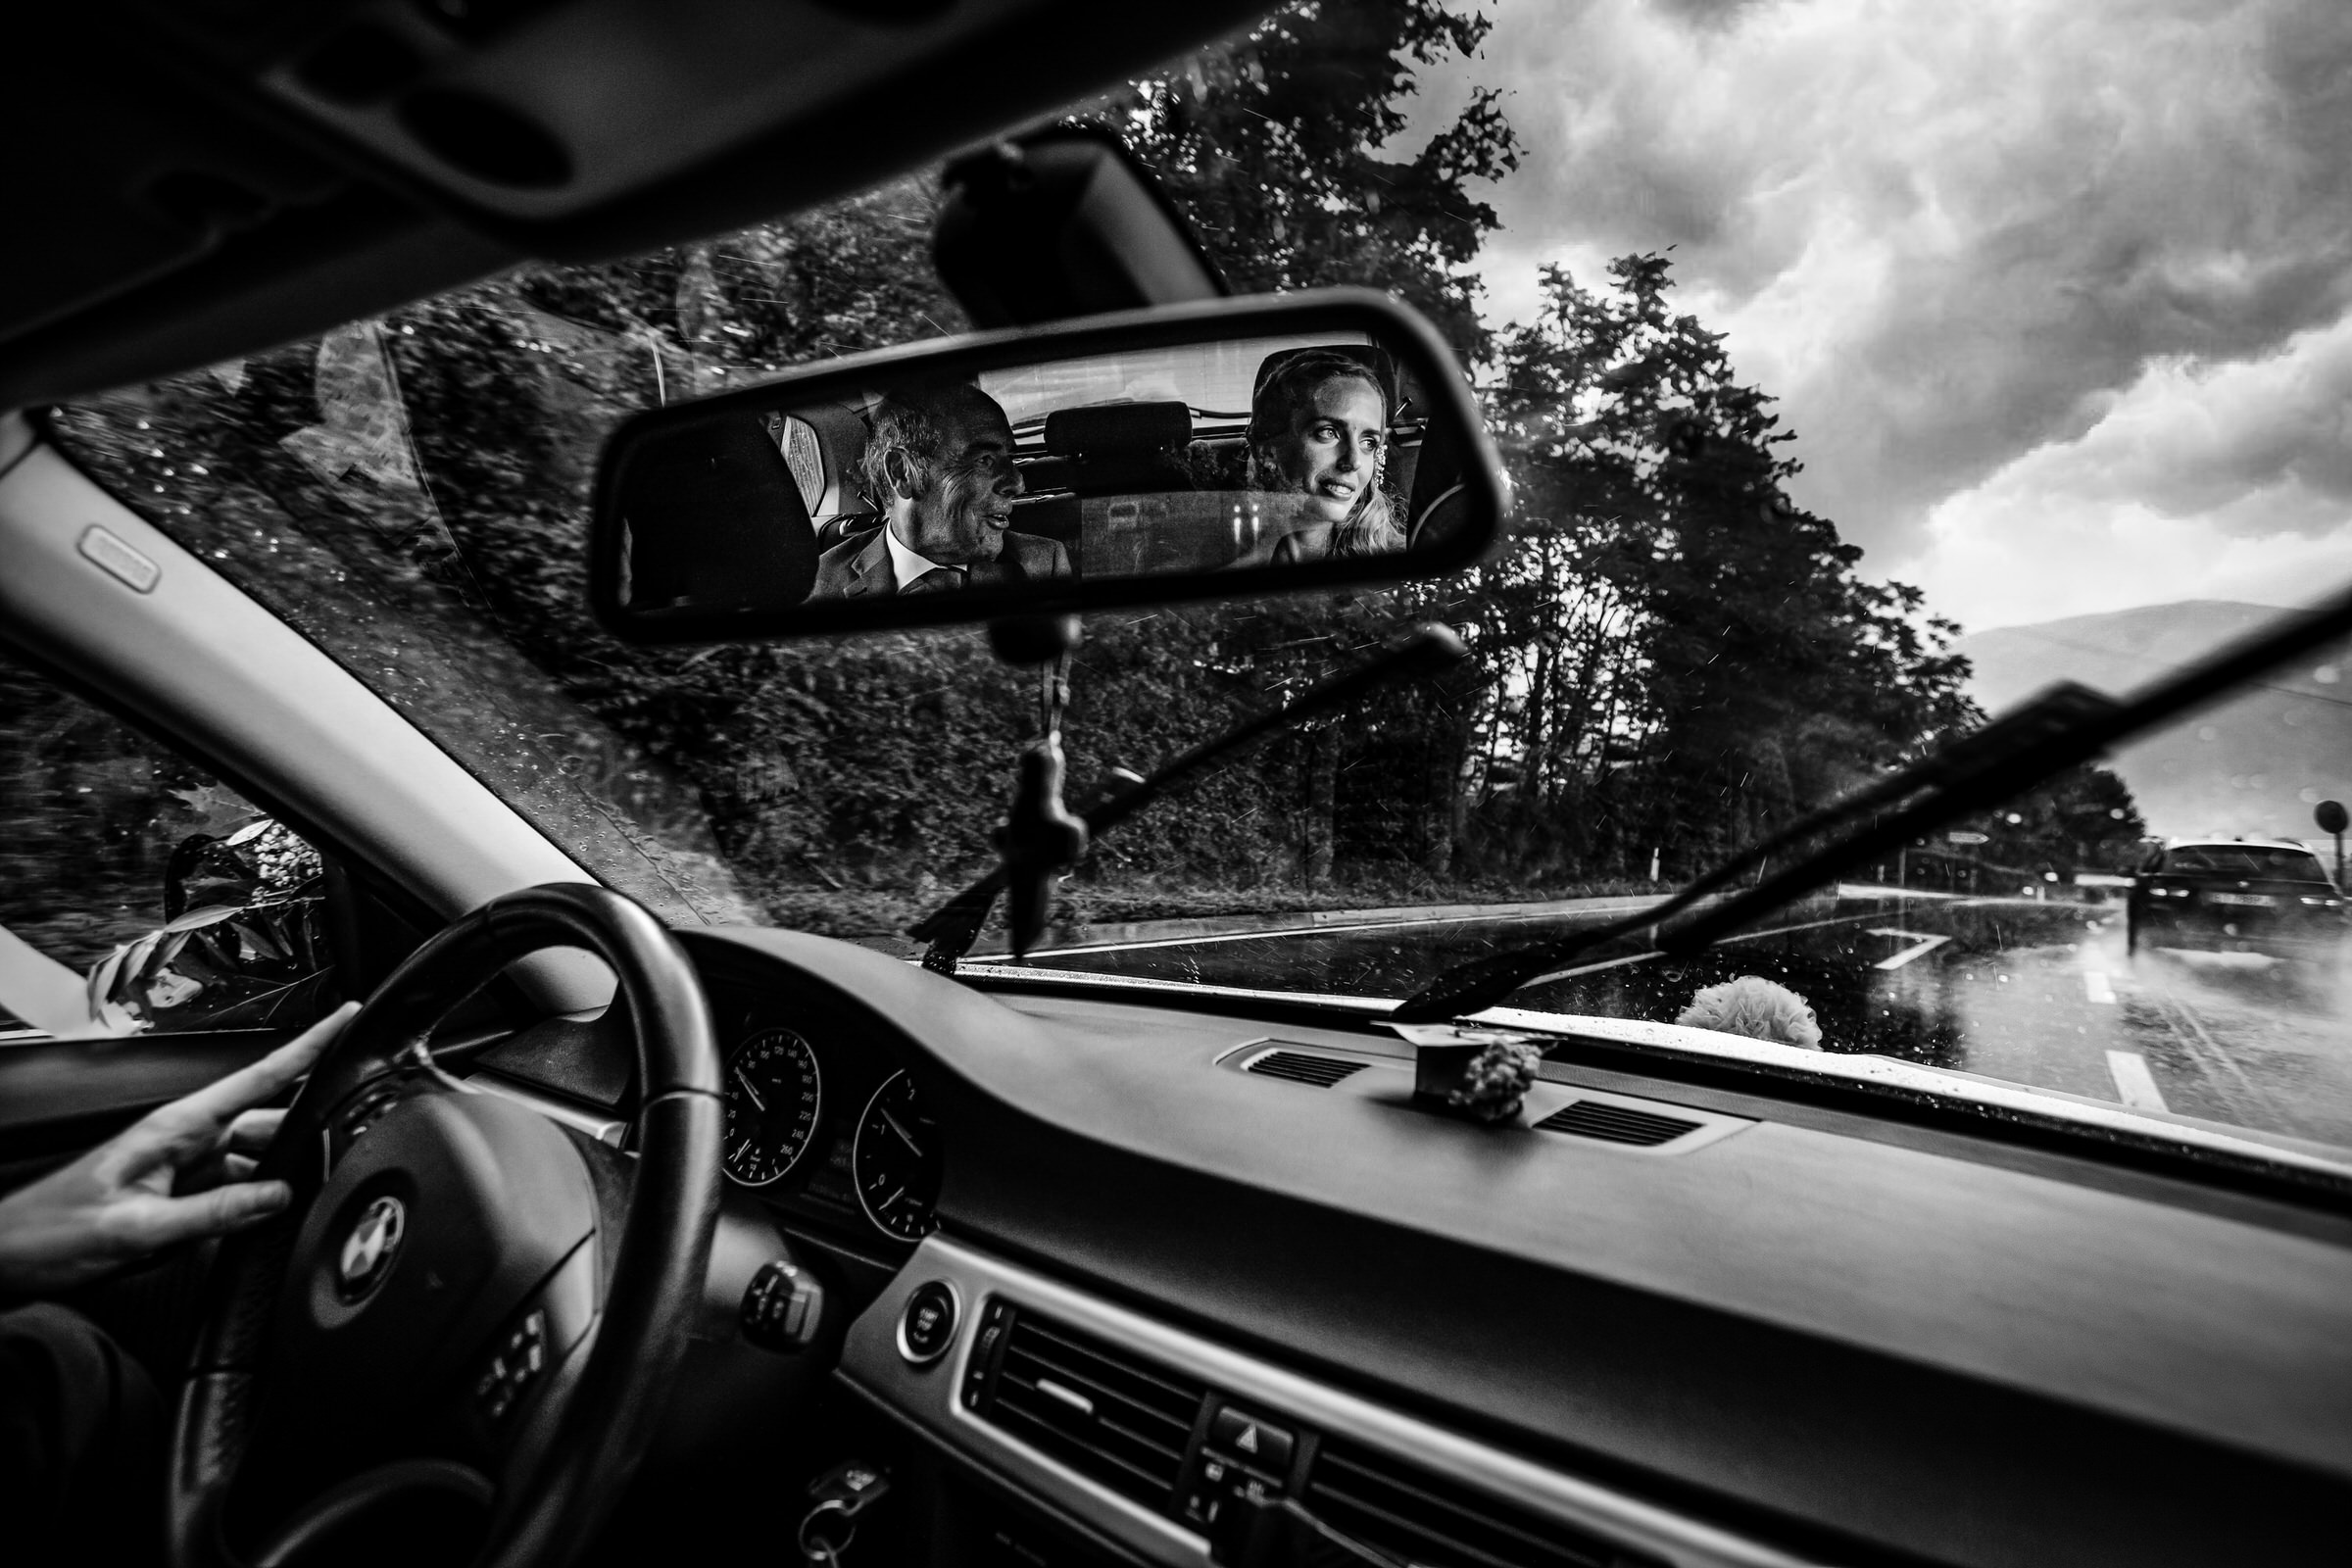 Couple in rear view mirror - photo by Luca + Marta Gallizio Photography